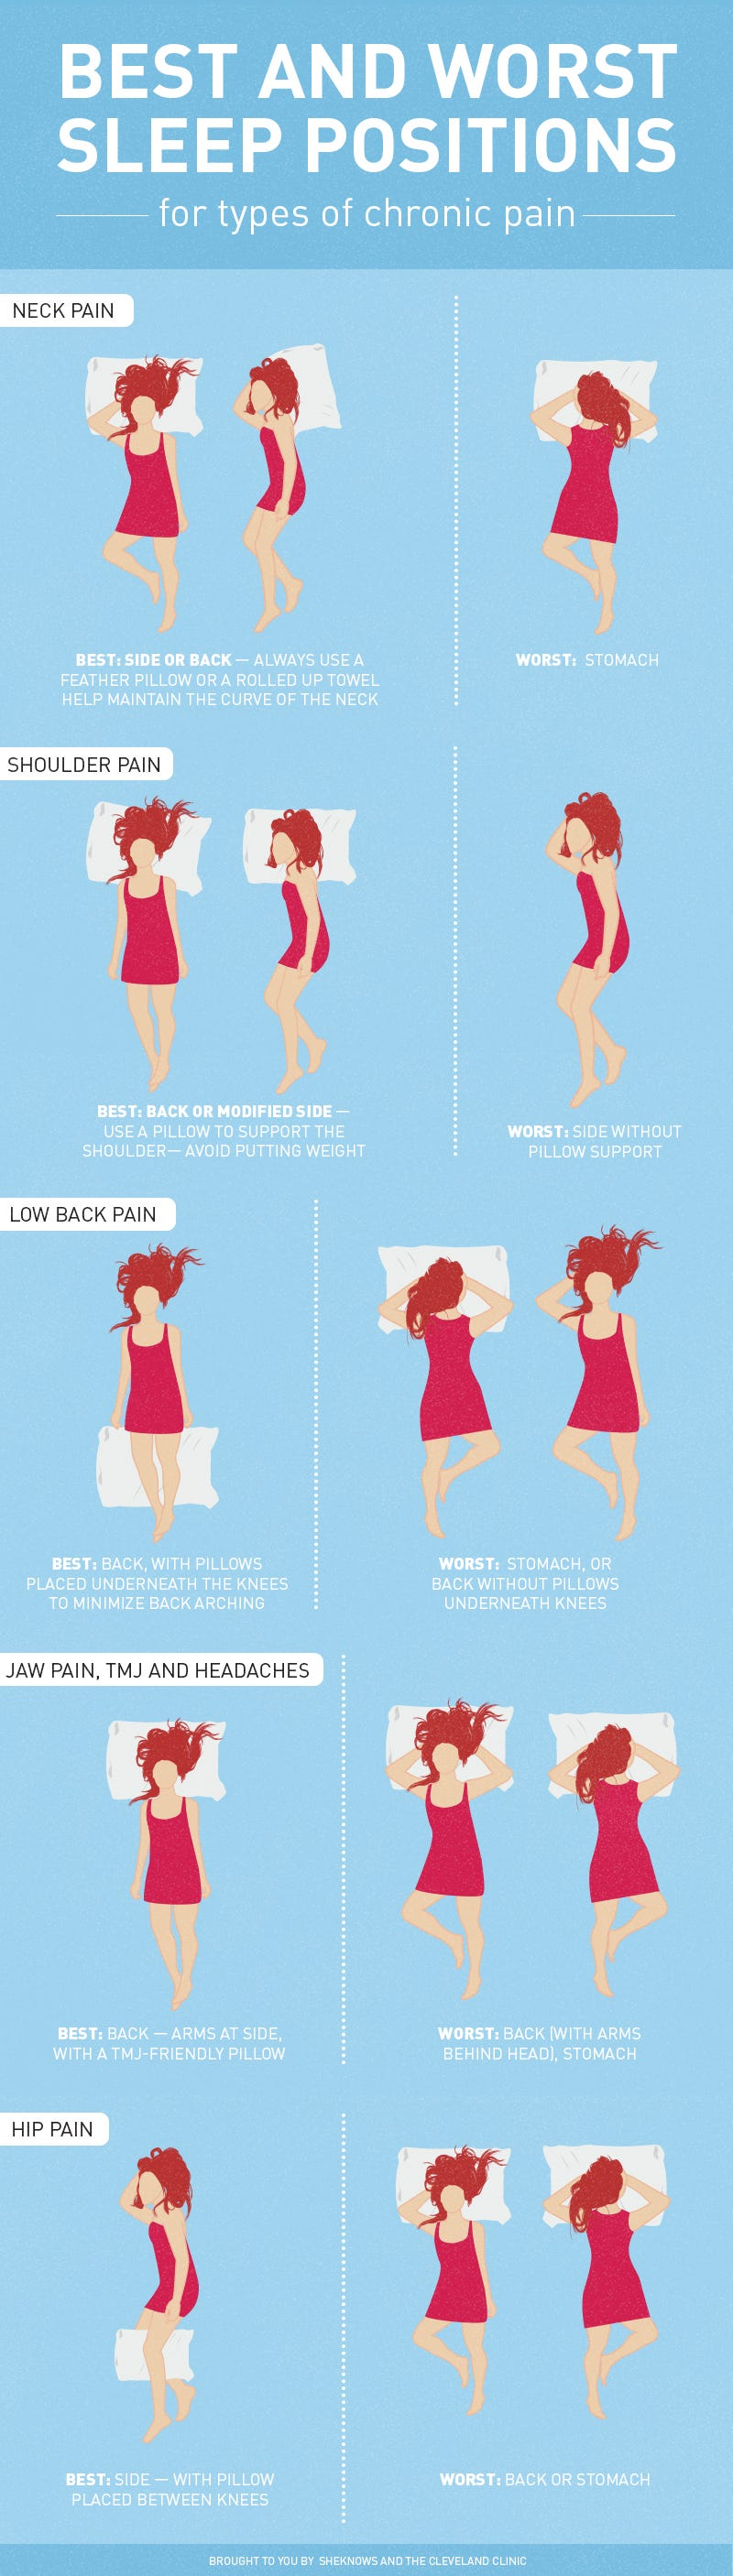 the graphic shows the best and worst sleeping positions for common pains